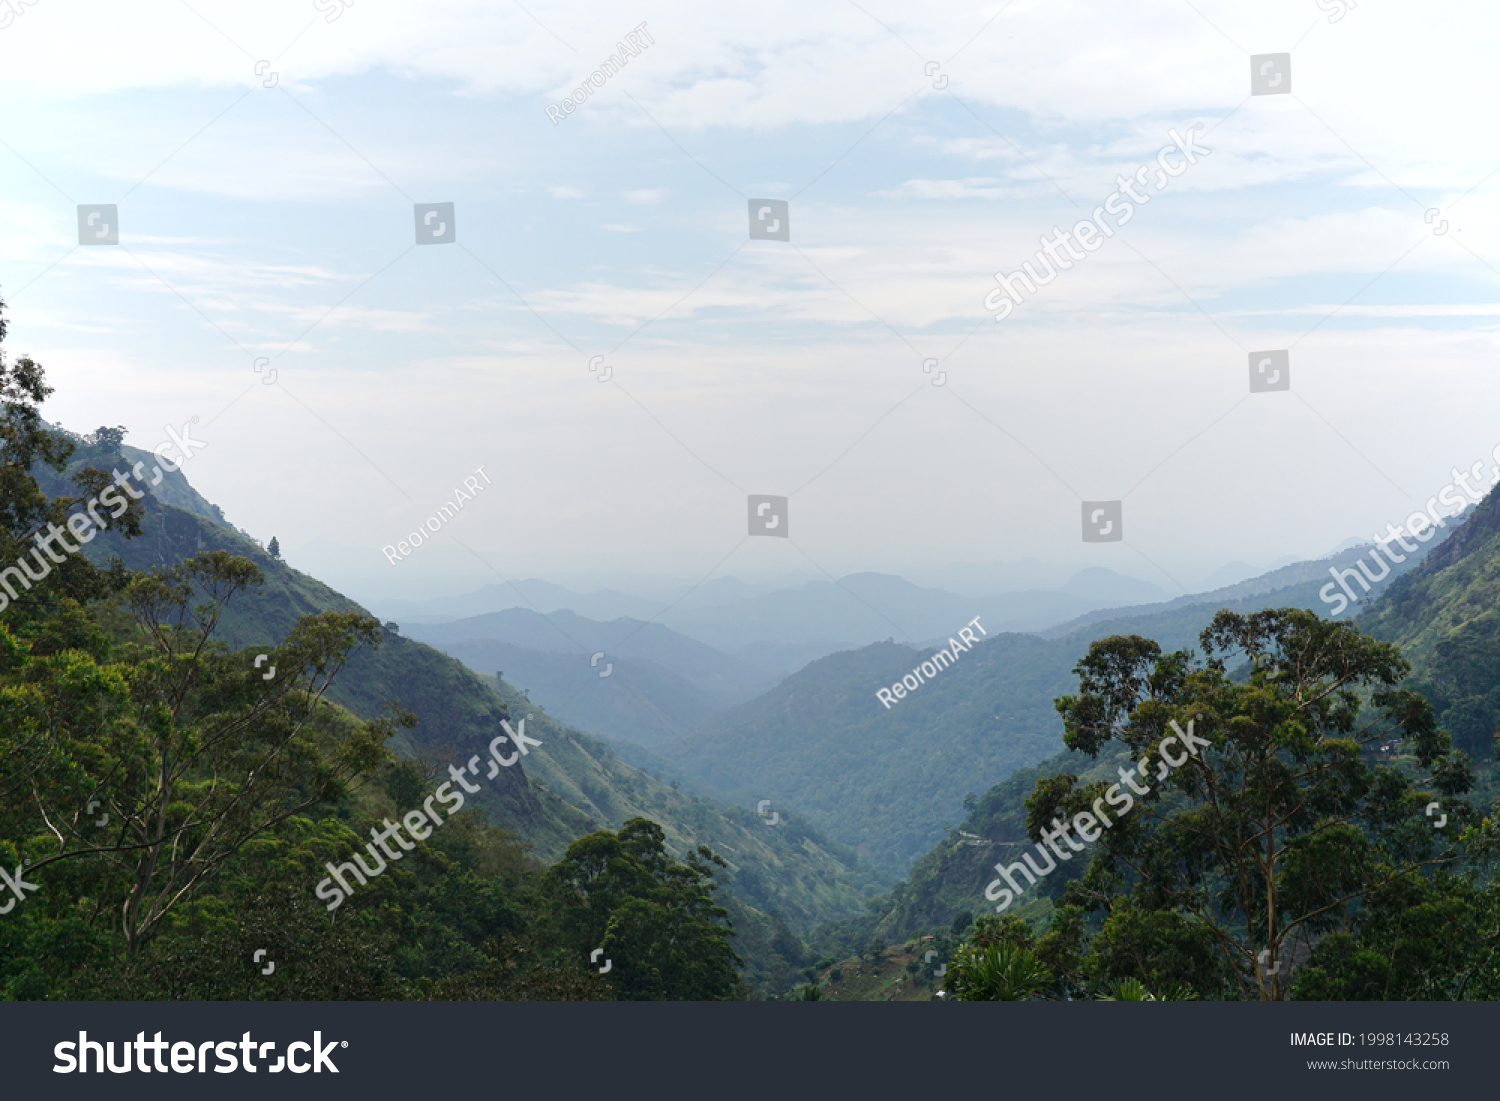 Ella gap, the view through two mountains little adamants peak and Ella mountain showing the southern plains. This is in Ella, Sri Lanka on 01.09.2020.